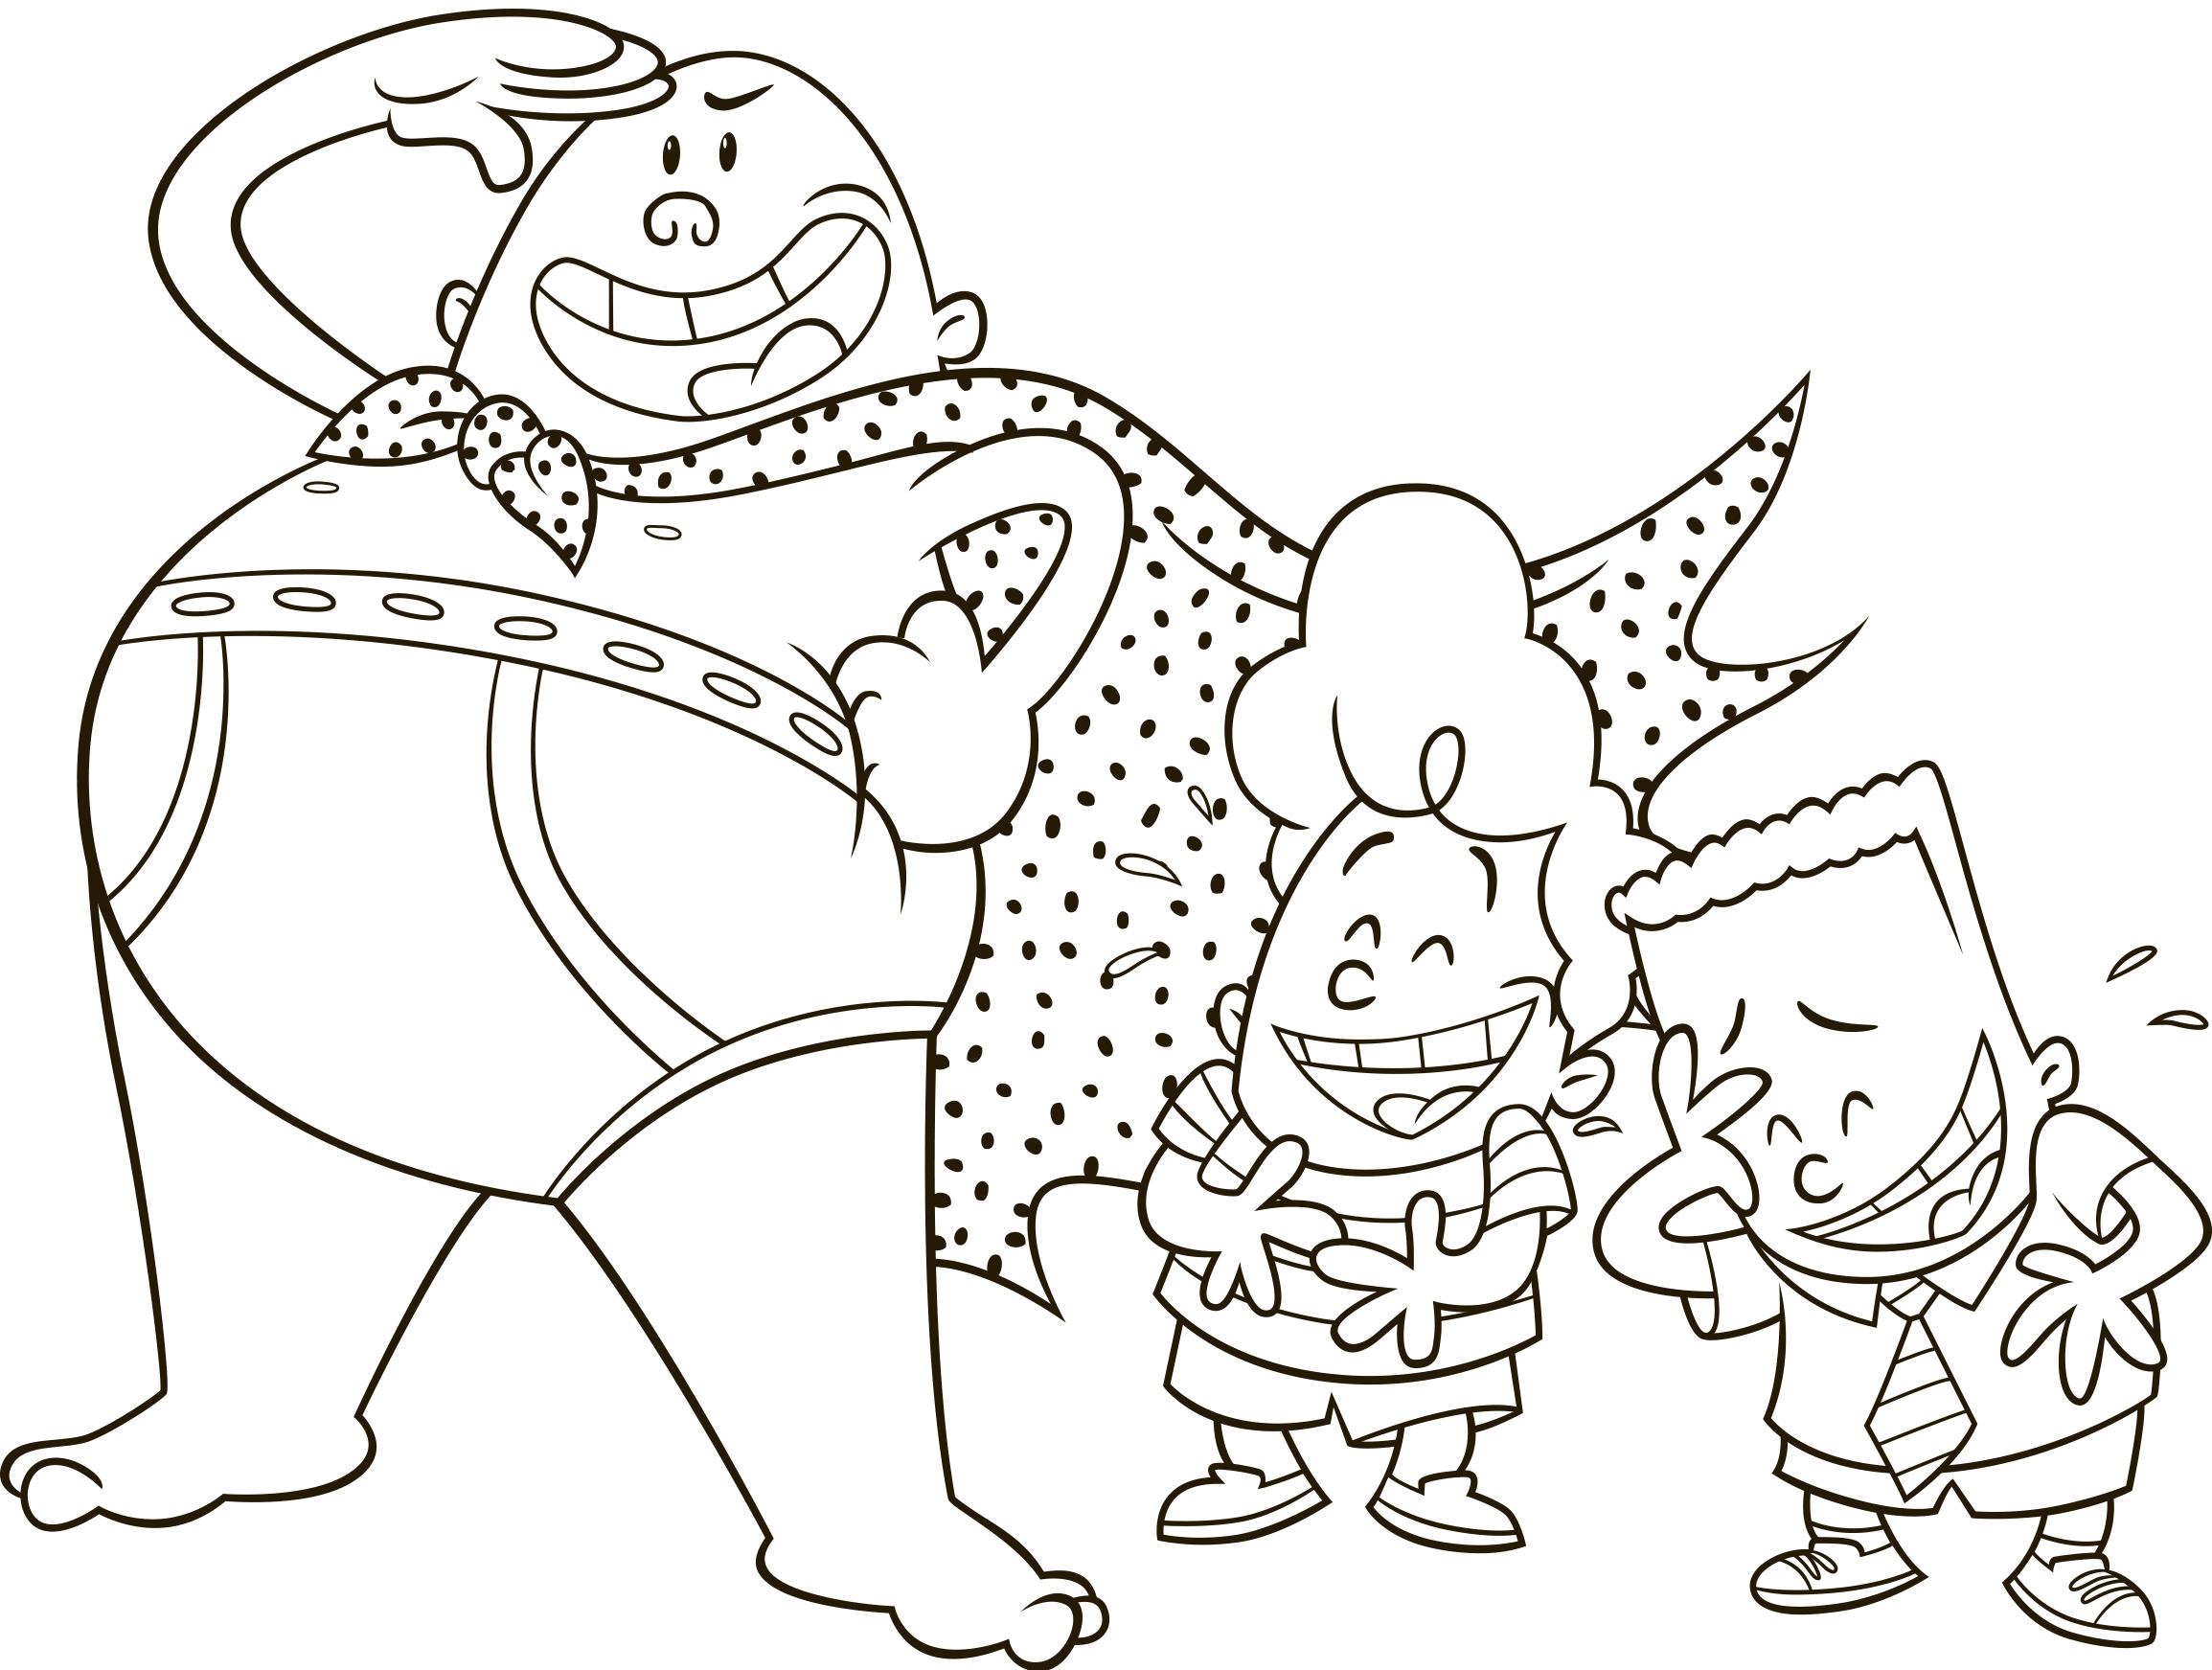 captain underpants coloring pages - captain underpants first epic movie movie night fun